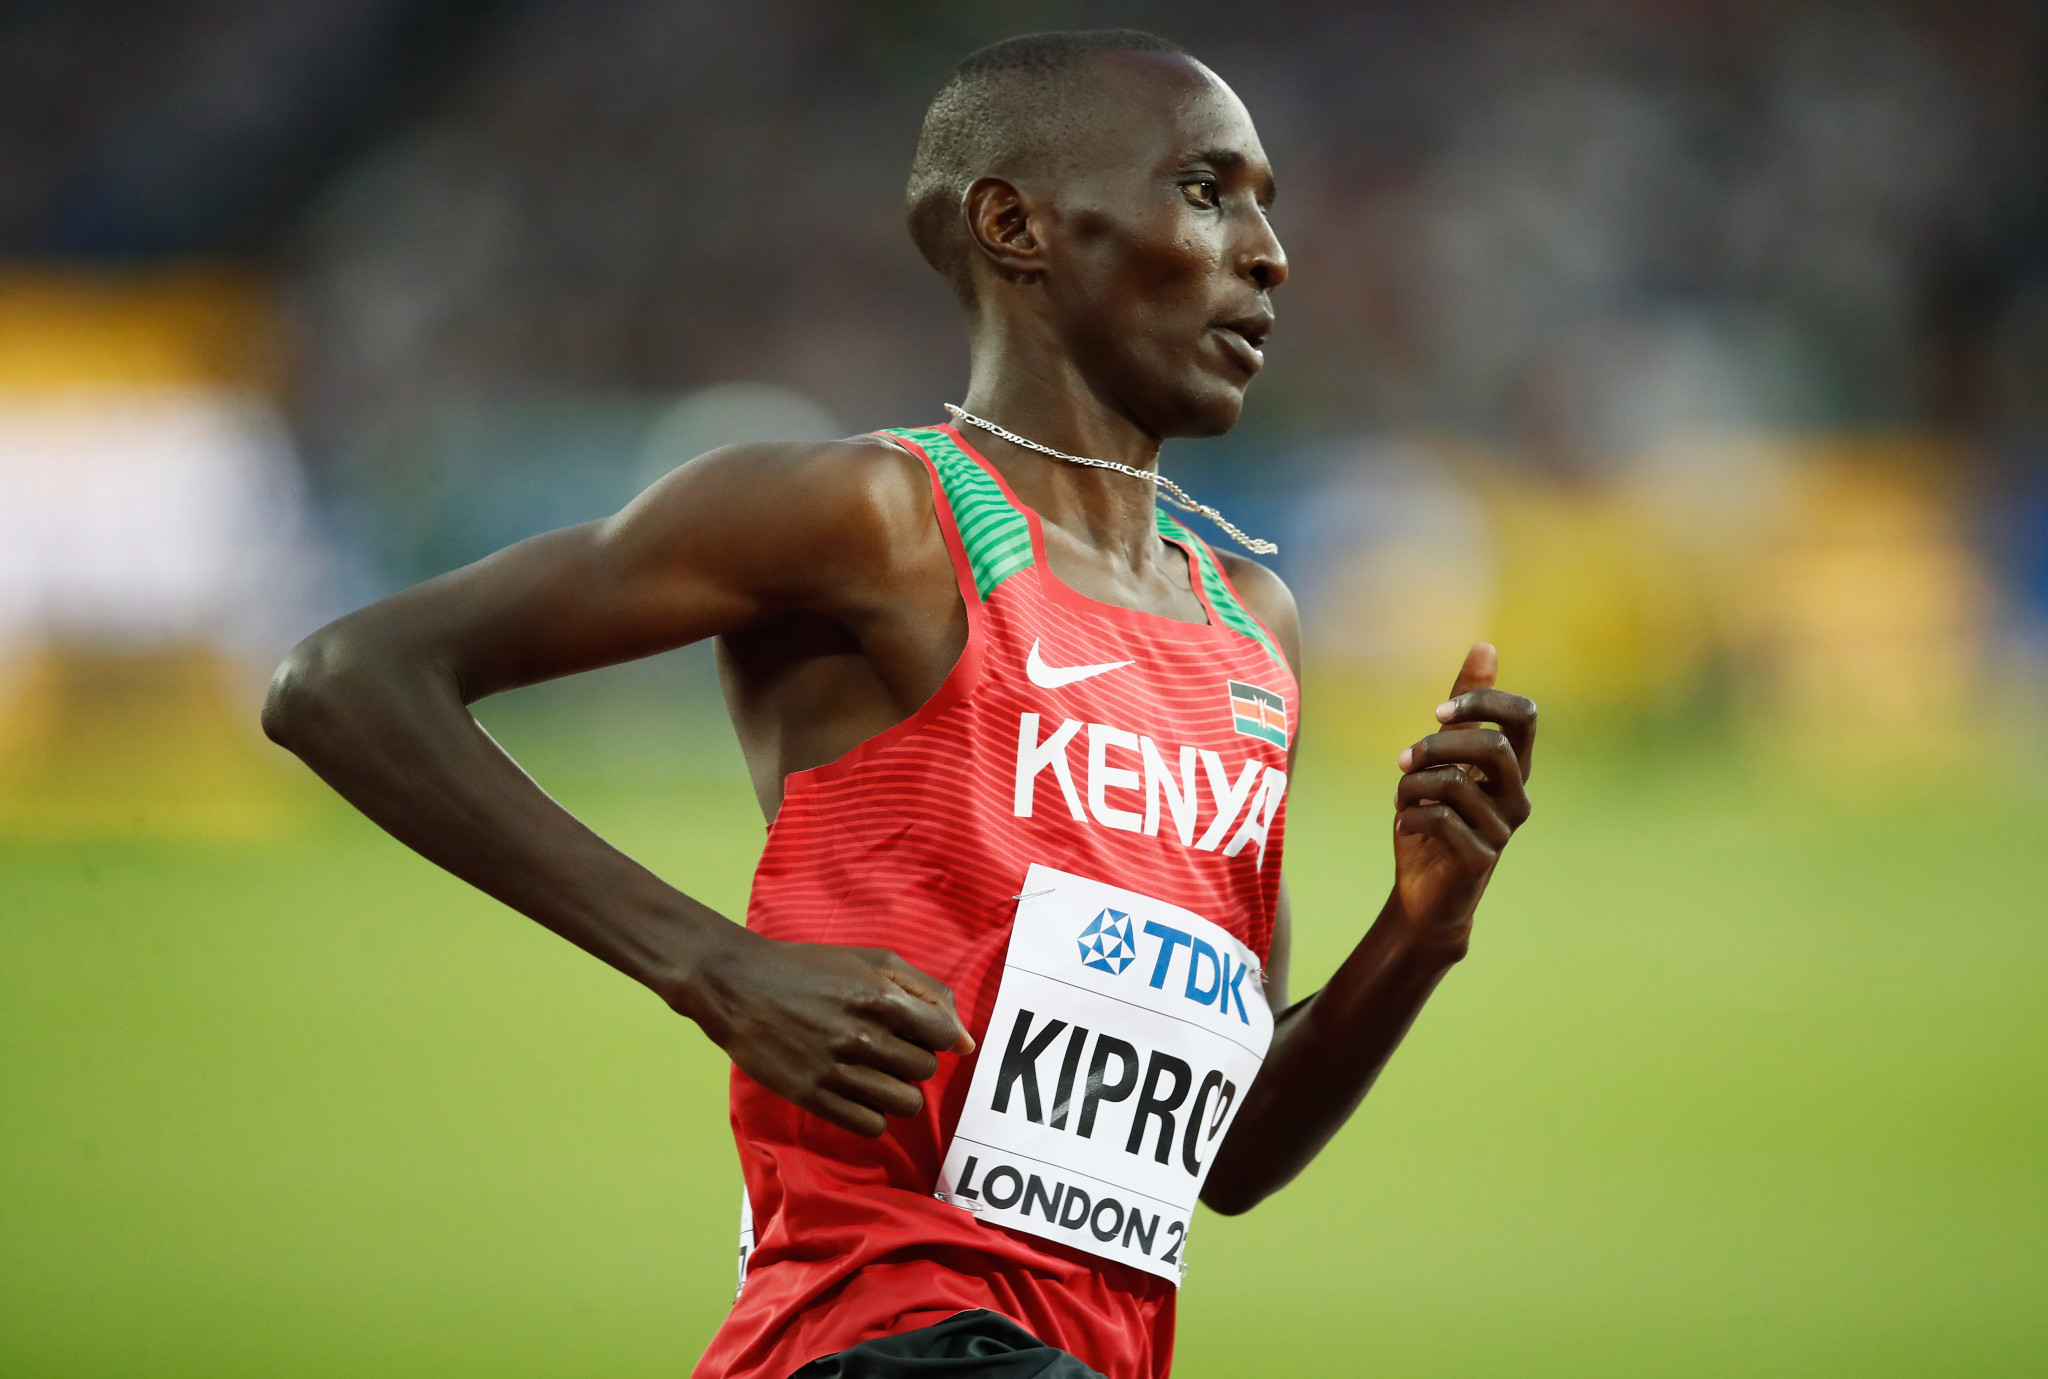 Kenyan middle-distance runner Asbel Kiprop recently tested positive for a banned substance before alleging he had been extorted by doping control officers ©Getty Images